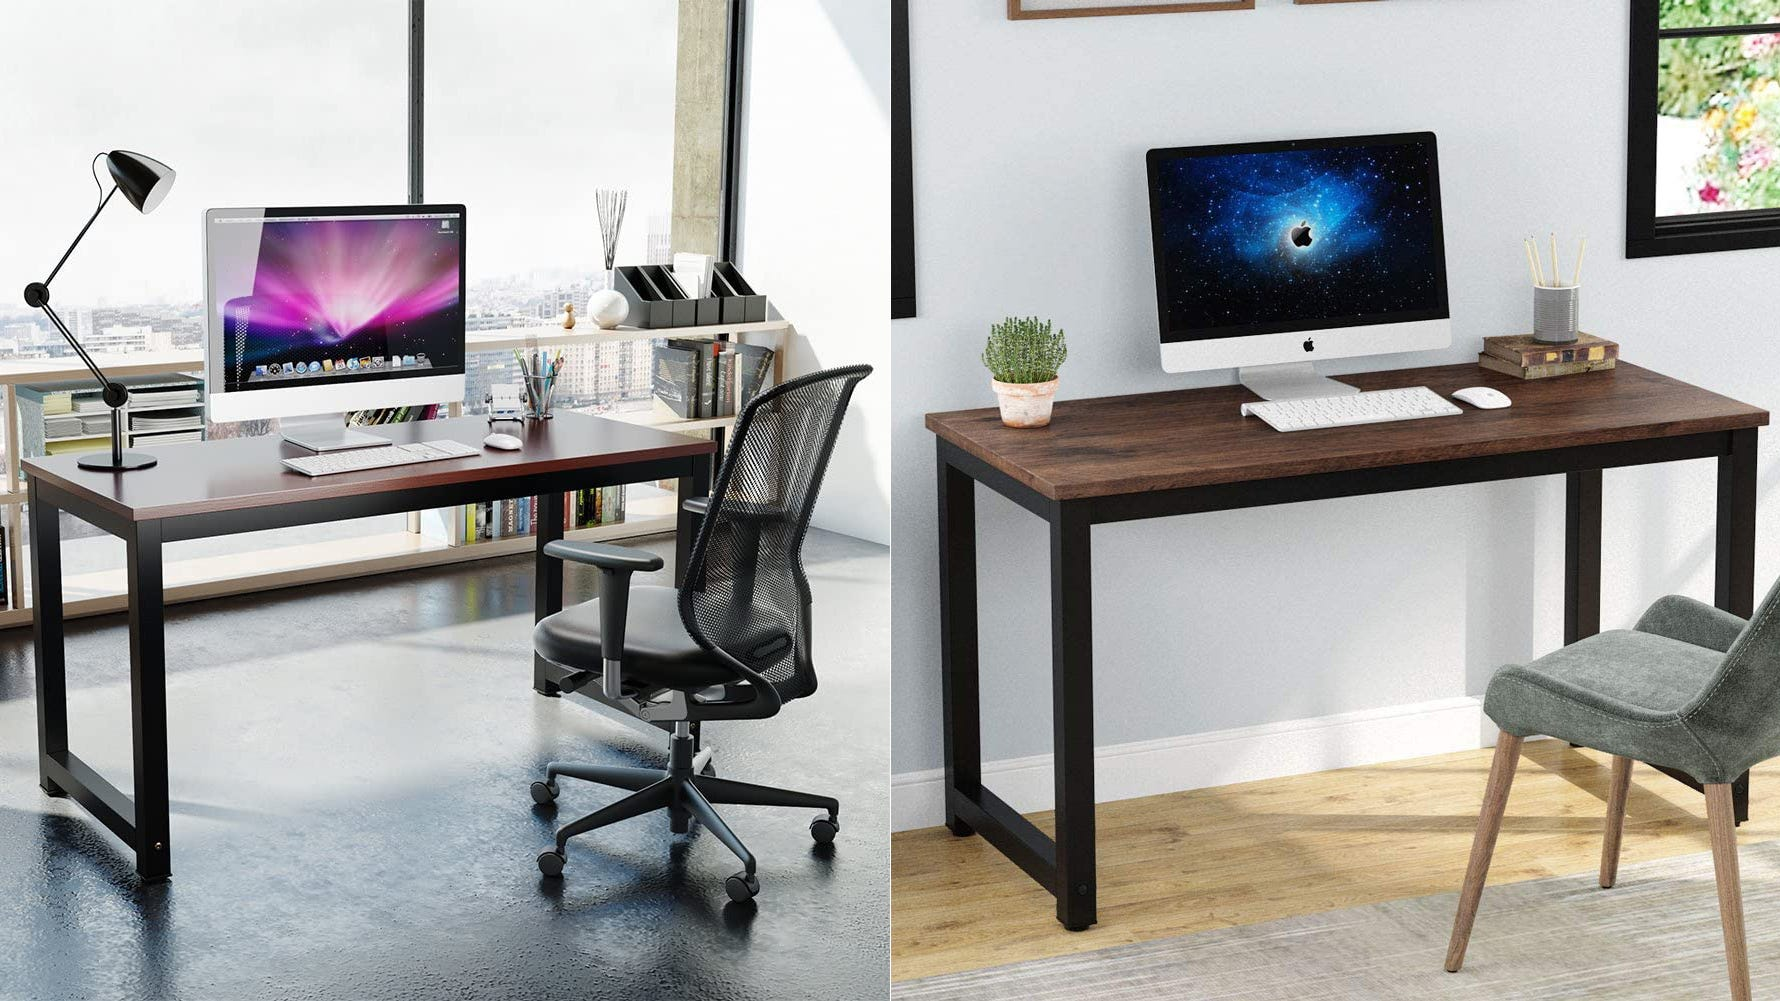 10 Popular Desks Under 150 That Are Still In Stock On Amazon Wayfair And More